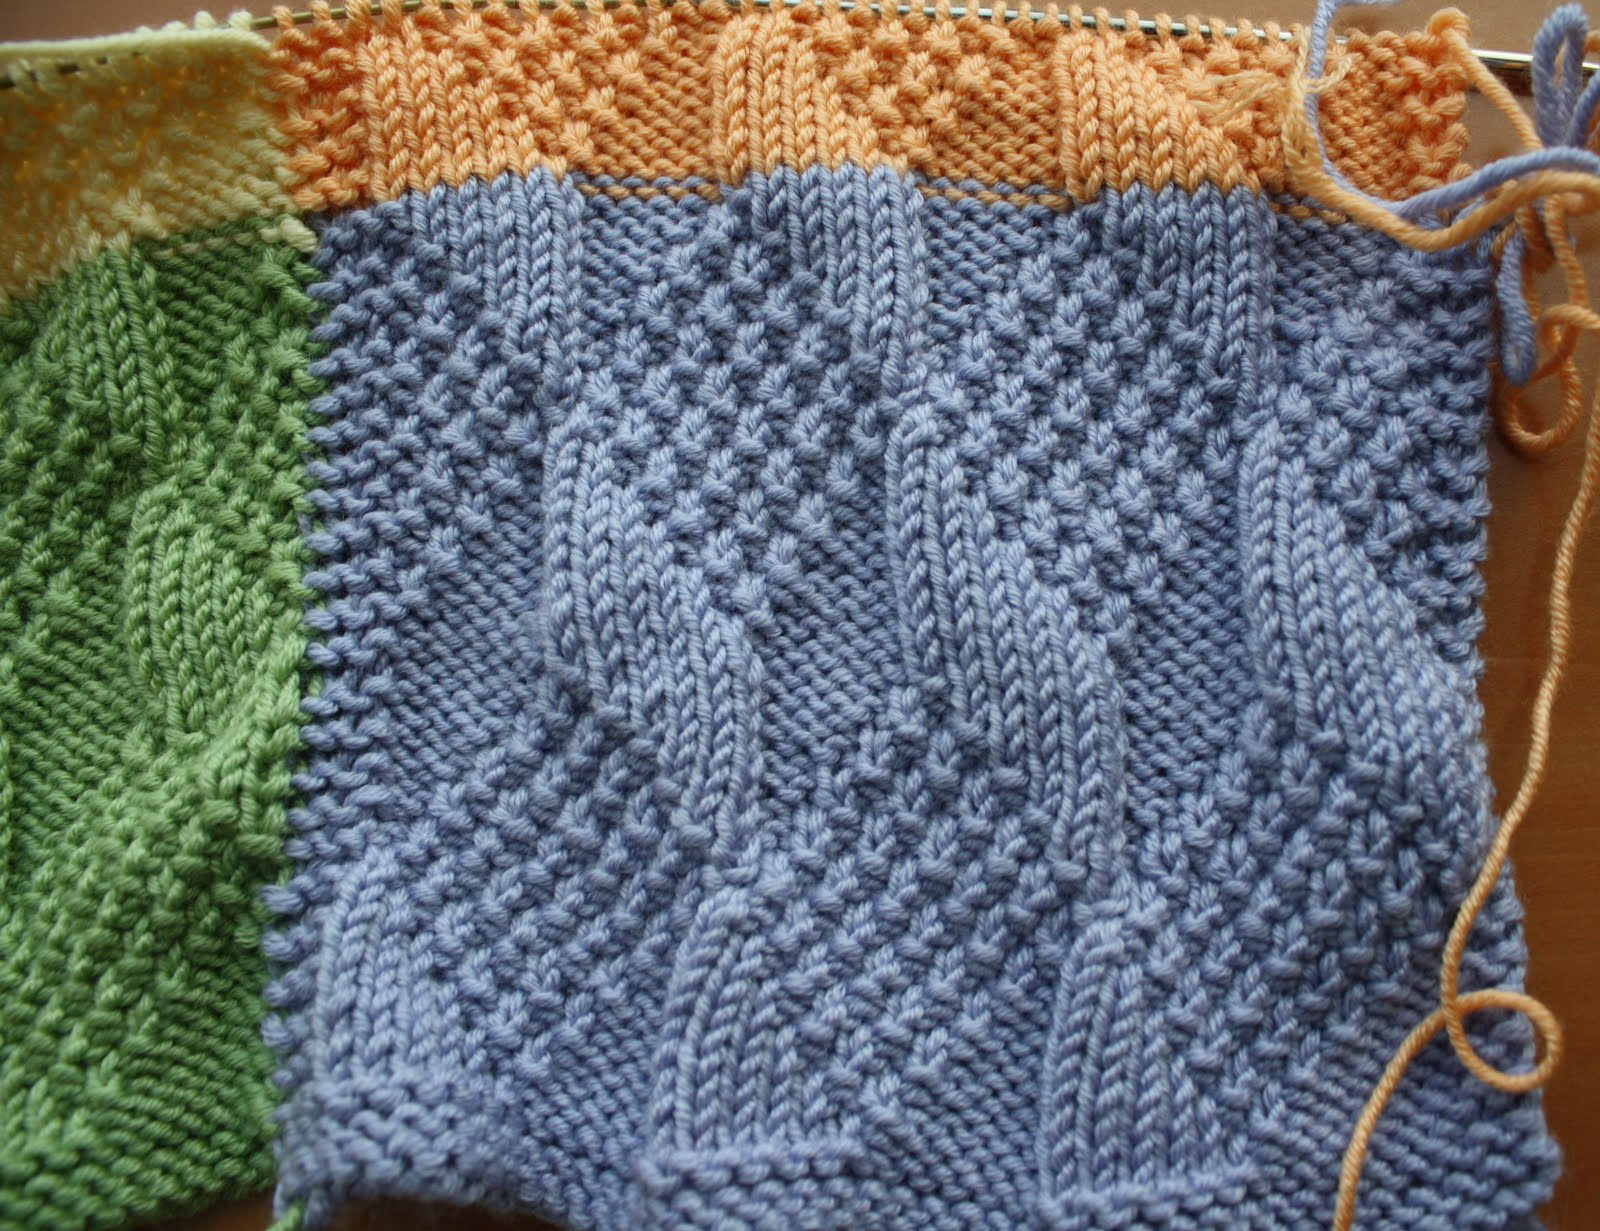 Knitting Quilt Patterns : Queerjoe s knitting